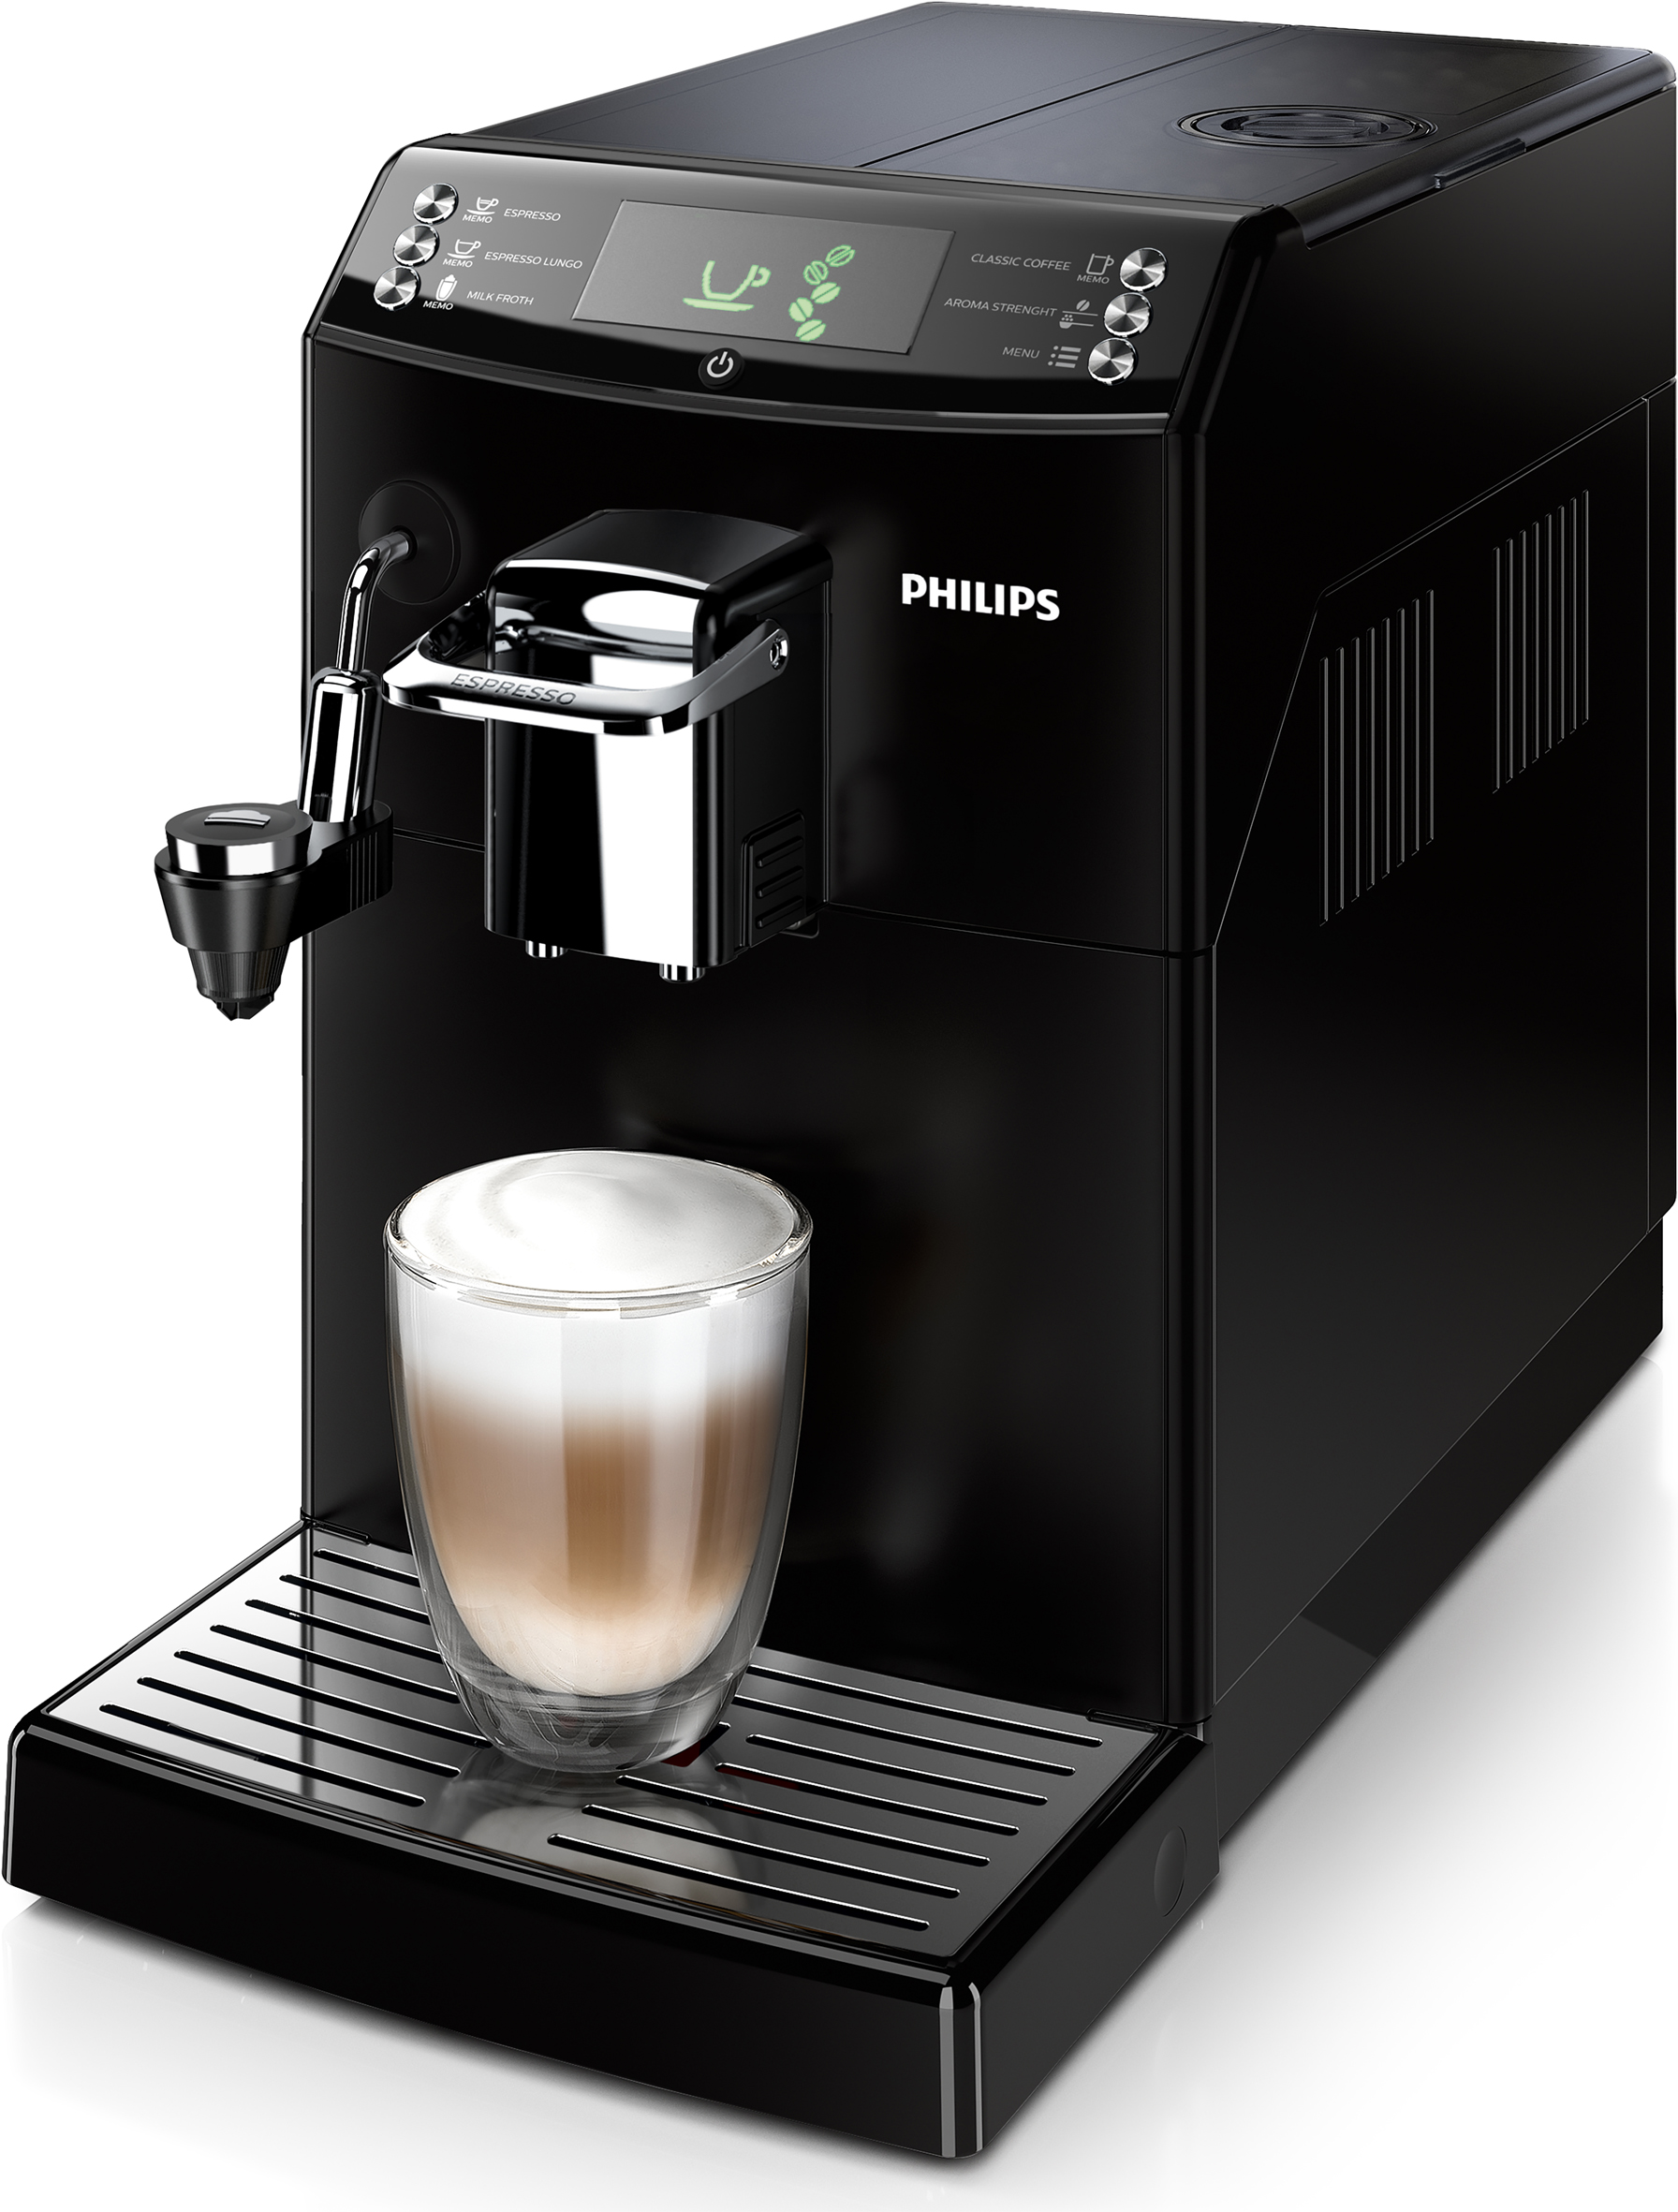 philips kaffeemaschine serie 4000 hd8844 01 mit cappuccinatore. Black Bedroom Furniture Sets. Home Design Ideas